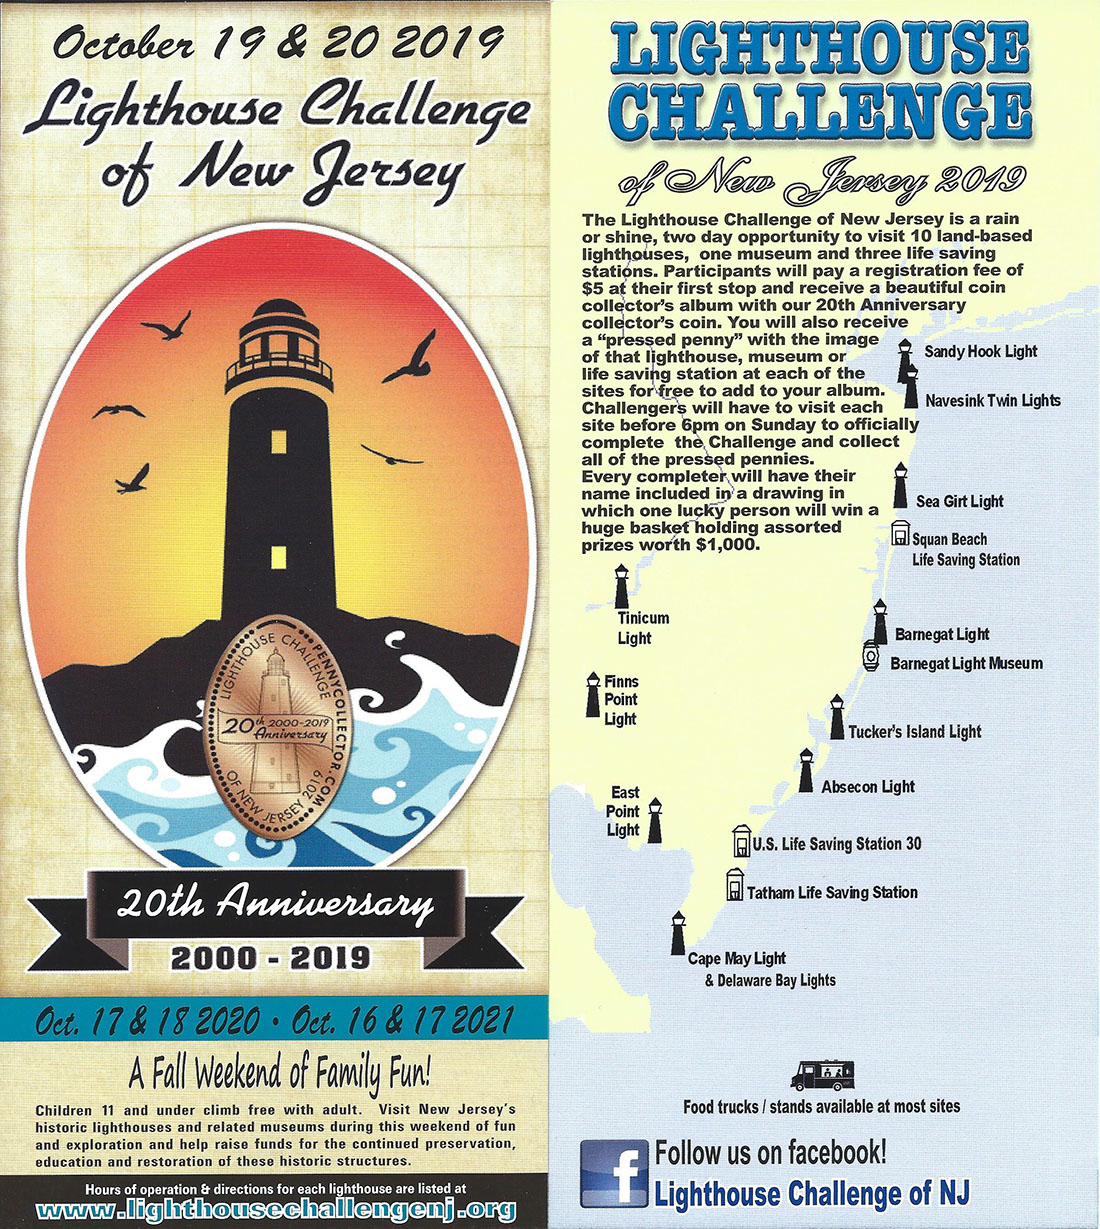 Lighthouse Challenge